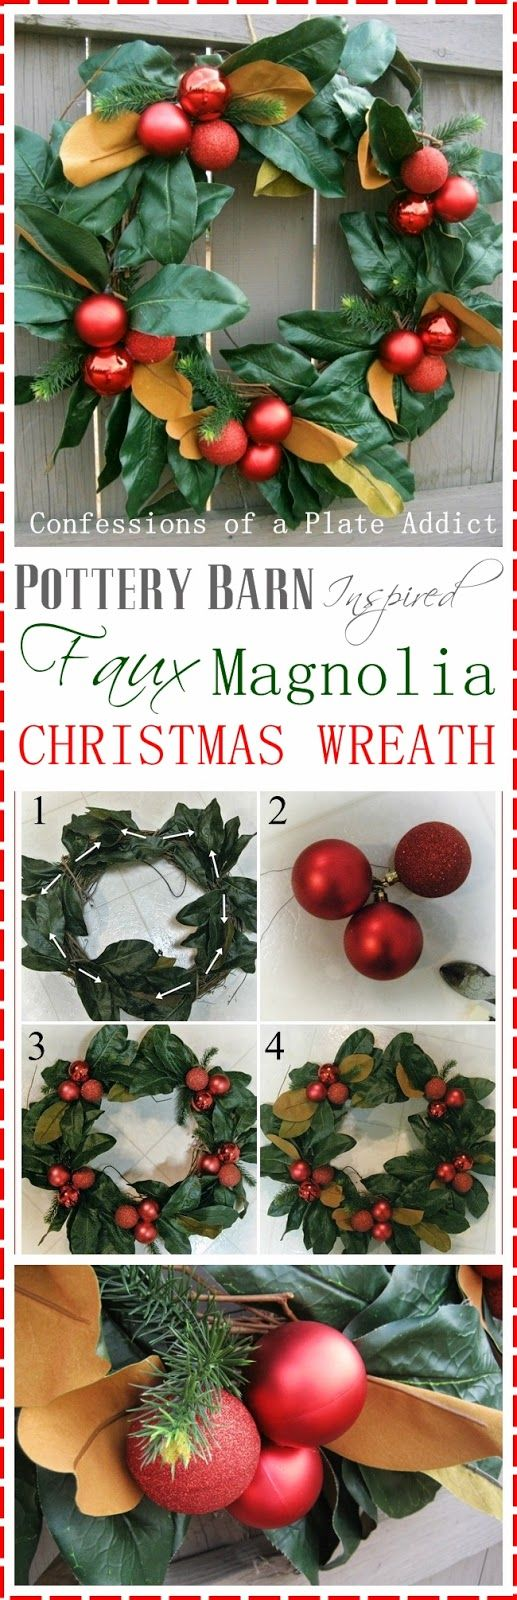 CONFESSIONS OF A PLATE ADDICT: Pottery Barn Inspired Faux Magnolia Wreath